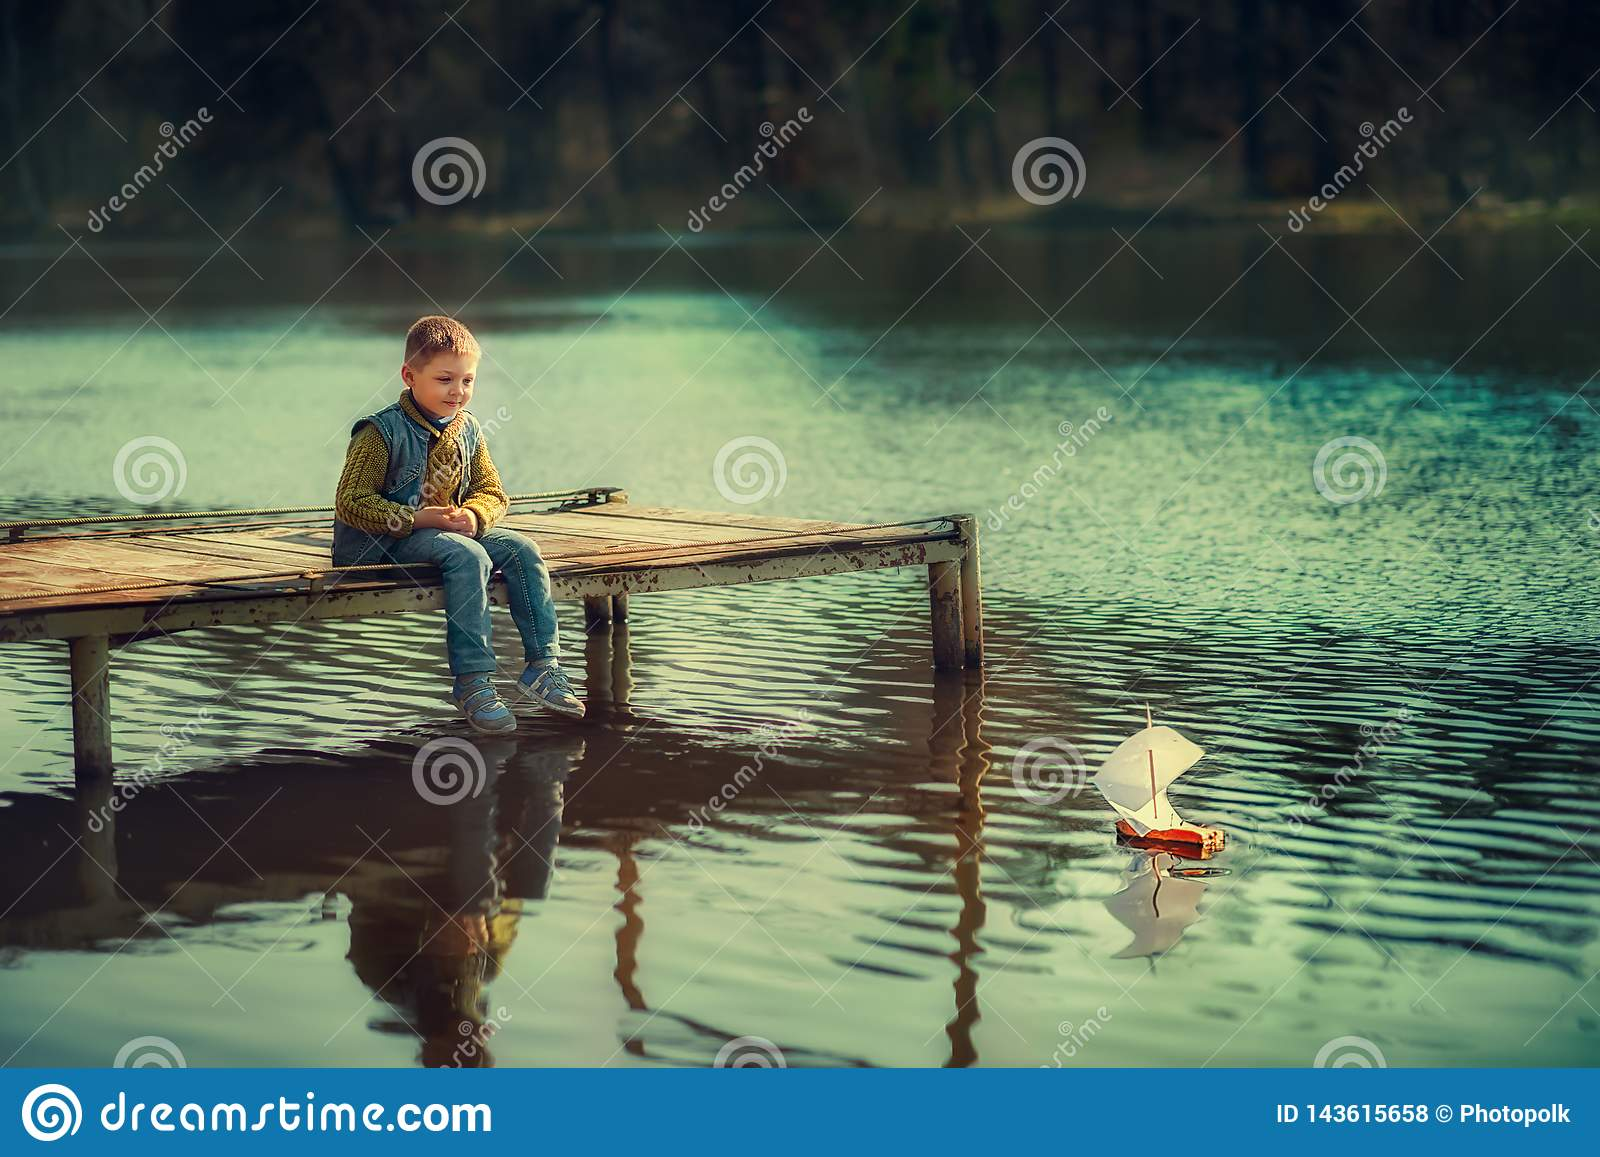 Boy on the river